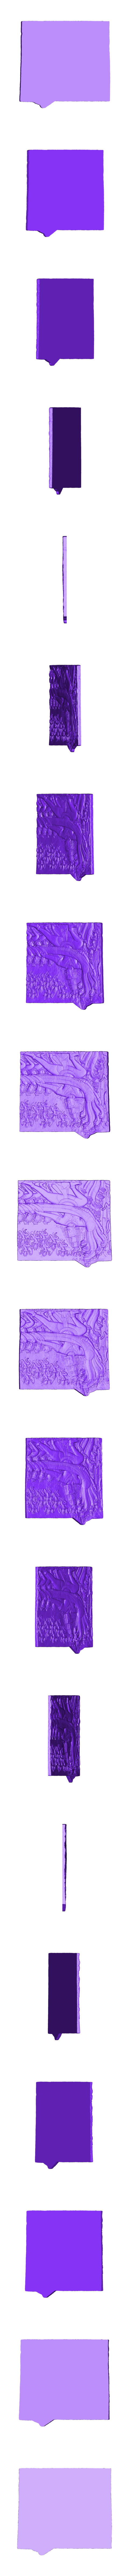 Samudra Manthan.OBJ Download free OBJ file Plaster Cast of a section of the bas-relief of Angkor Wat depicting Samudra Manthan (Churning of the Ocean of Milk) • Model to 3D print, ThreeDScans